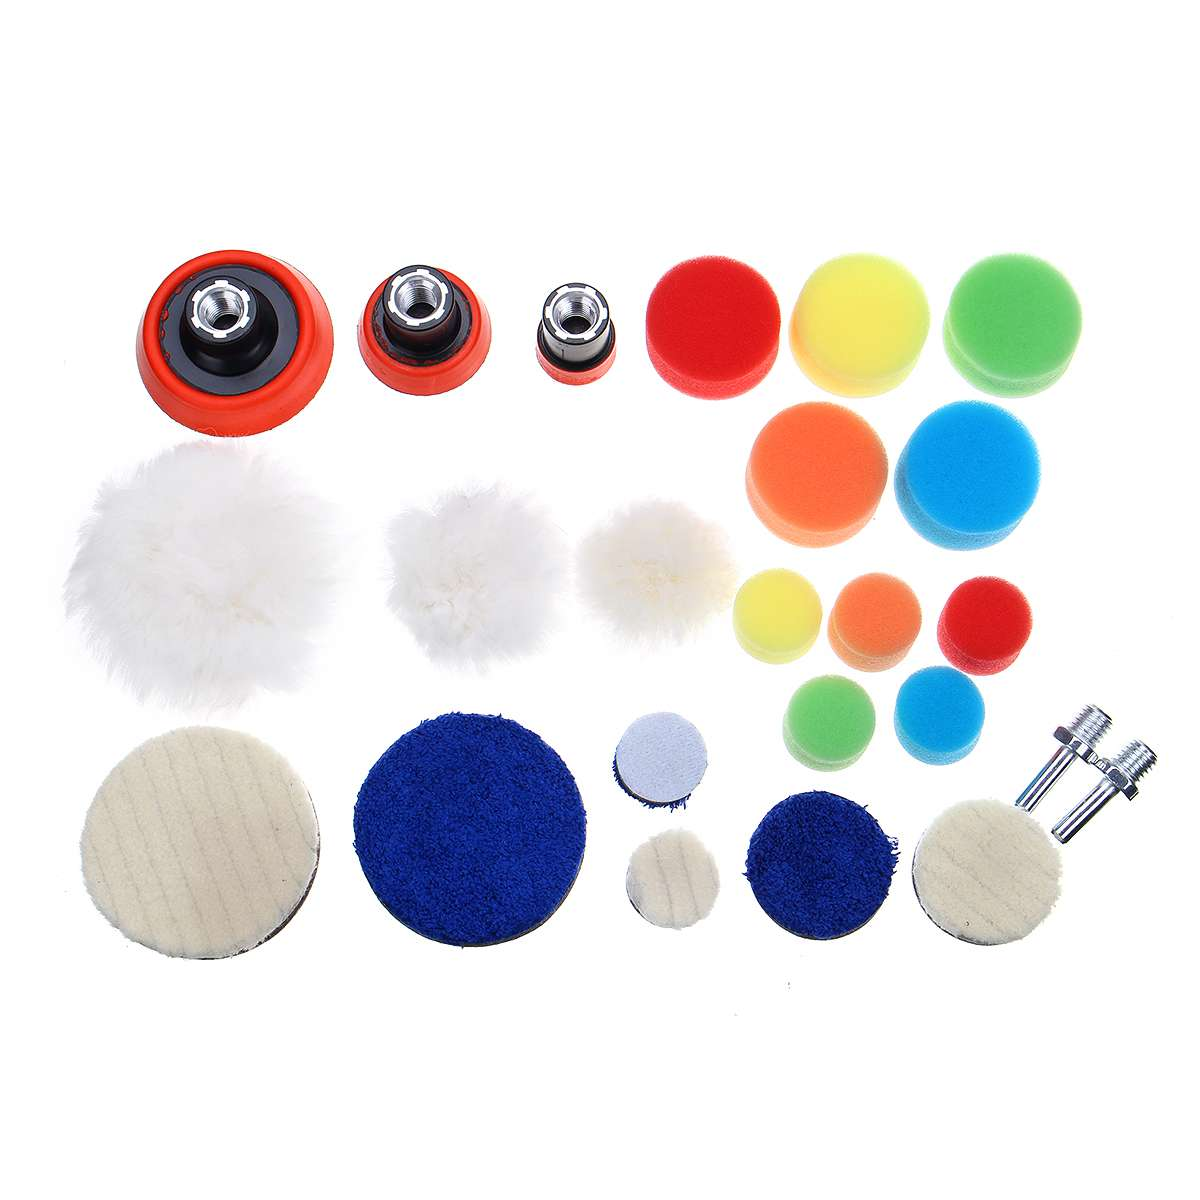 24Pcs/Set Car Polishing Pad 1/2/3 Inch Sponge Buffing Waxing Boat Car Polish Buffer Drill Wheel Polisher Removes Scratches